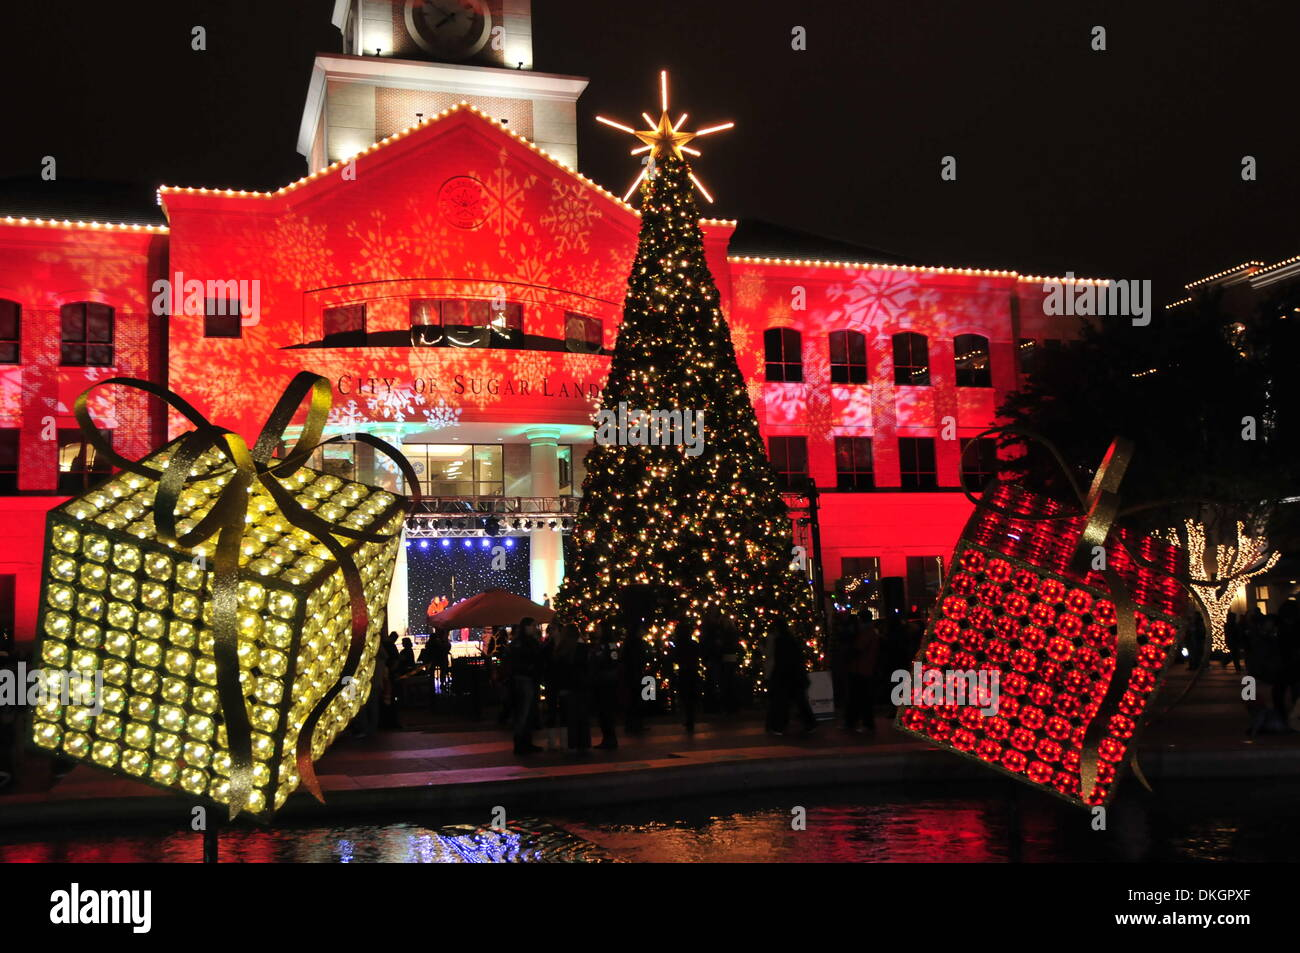 Sugar Land Texas USA. 5th December 2013. A 12-meter-high Christmas tree is seen after the 11th Annual Christmas Tree Lighting Ceremony in Sugar Land ... & Sugar Land Texas USA. 5th December 2013. A 12-meter-high Christmas ...